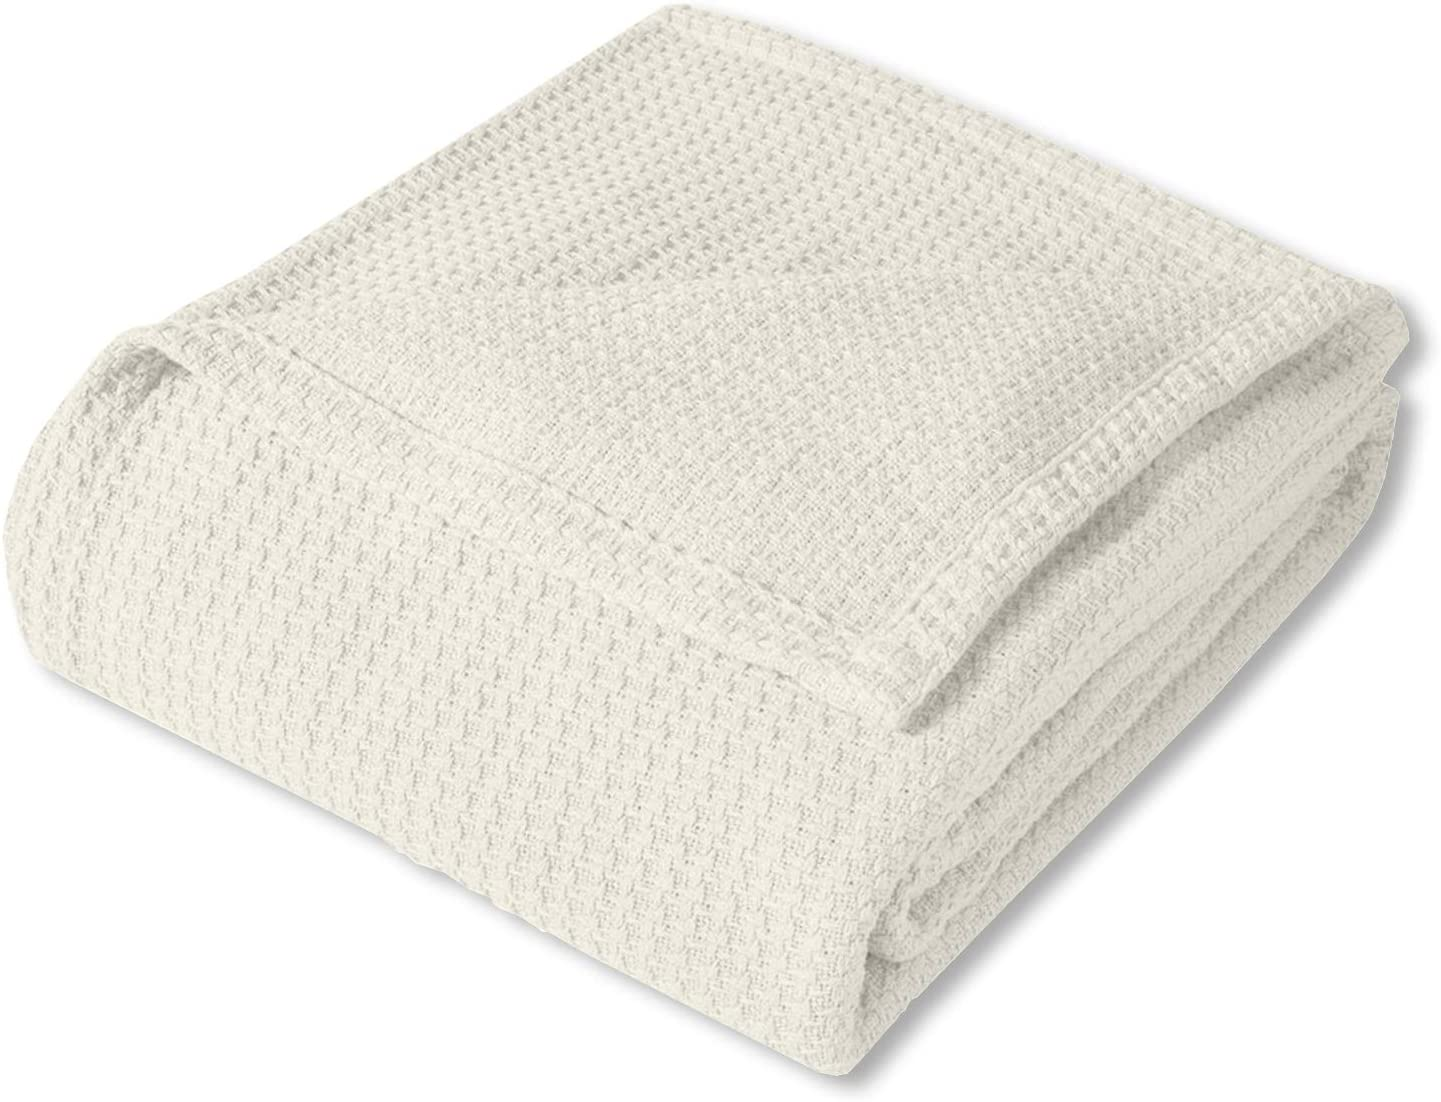 Sweet Home Collection Cotton Blanket